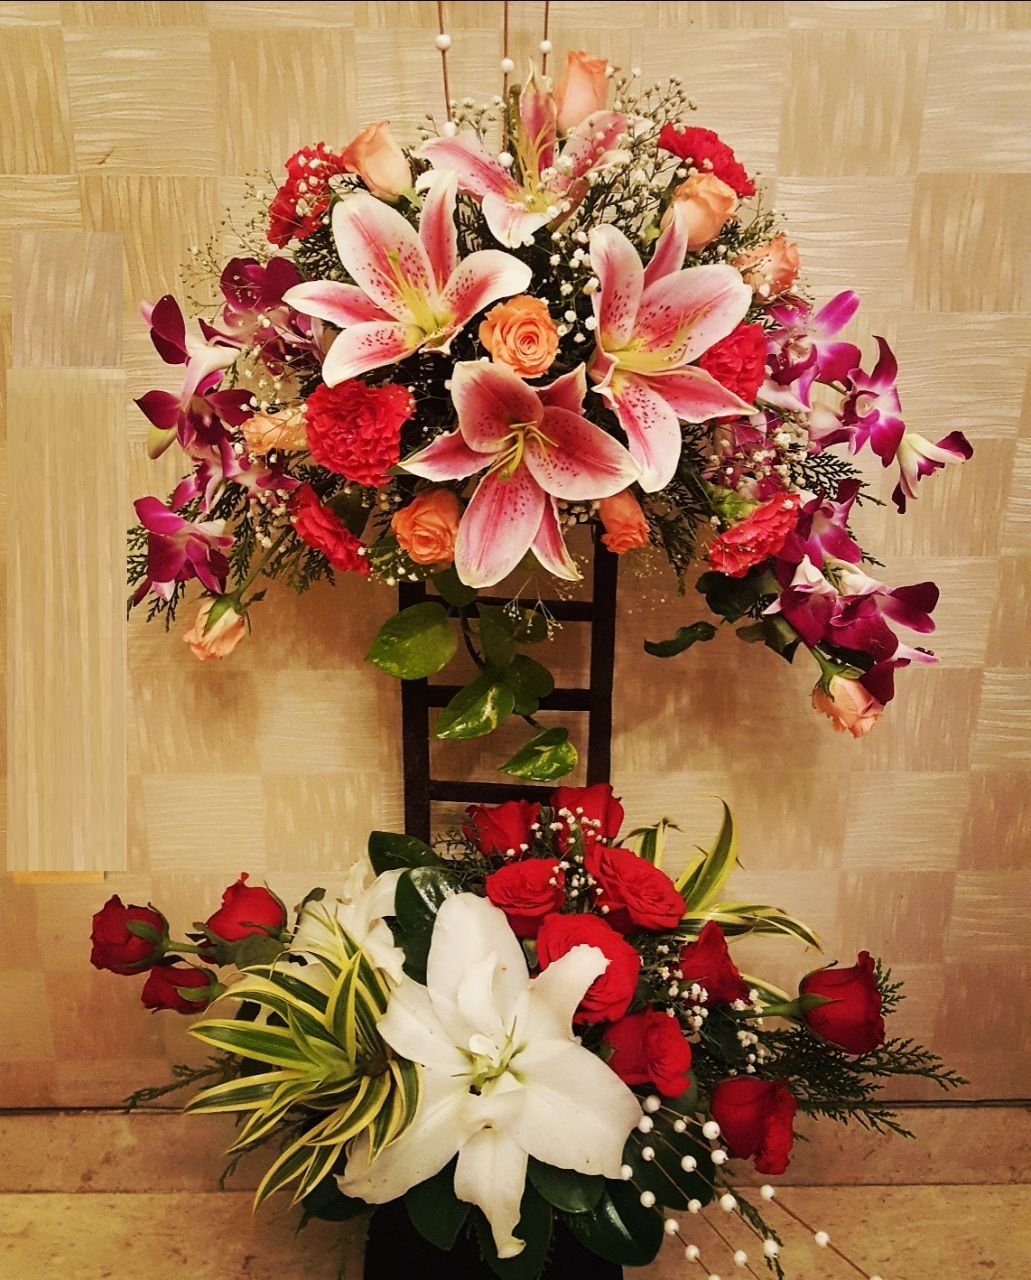 Lilies bouquet in various ranges are available for delivery in lilies bouquet in various ranges are available for delivery in mumbai order bouquet of lily with beautiful style and colors online delivery in mumbai izmirmasajfo